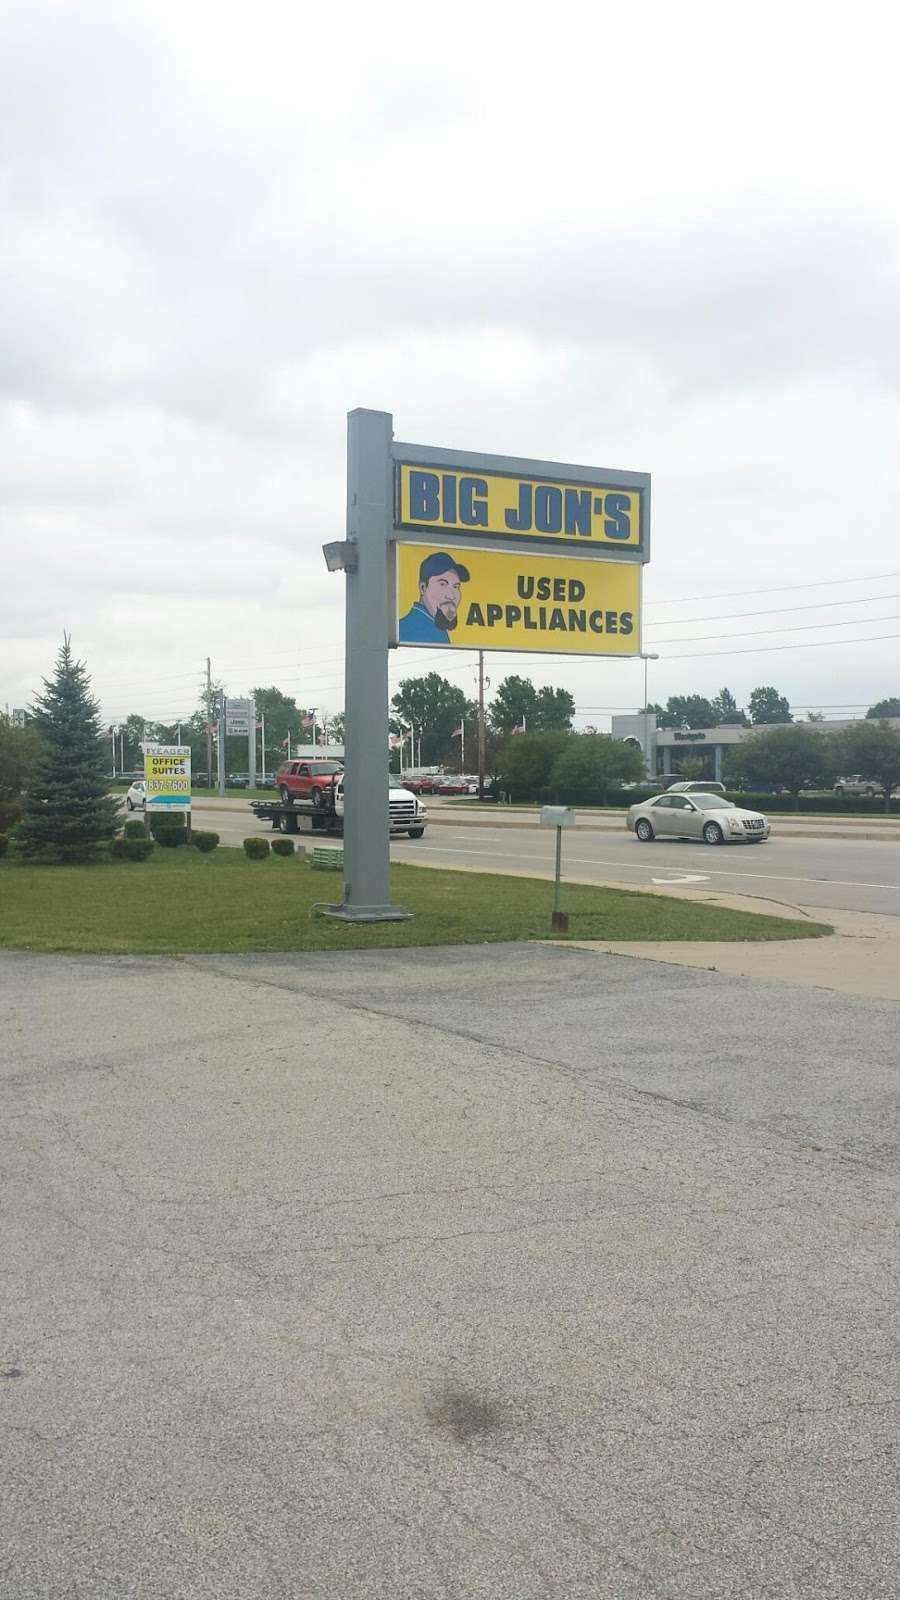 Big Jons Used Appliances - home goods store    Photo 8 of 9   Address: 2678 E Main St, Plainfield, IN 46168, USA   Phone: (317) 268-6880